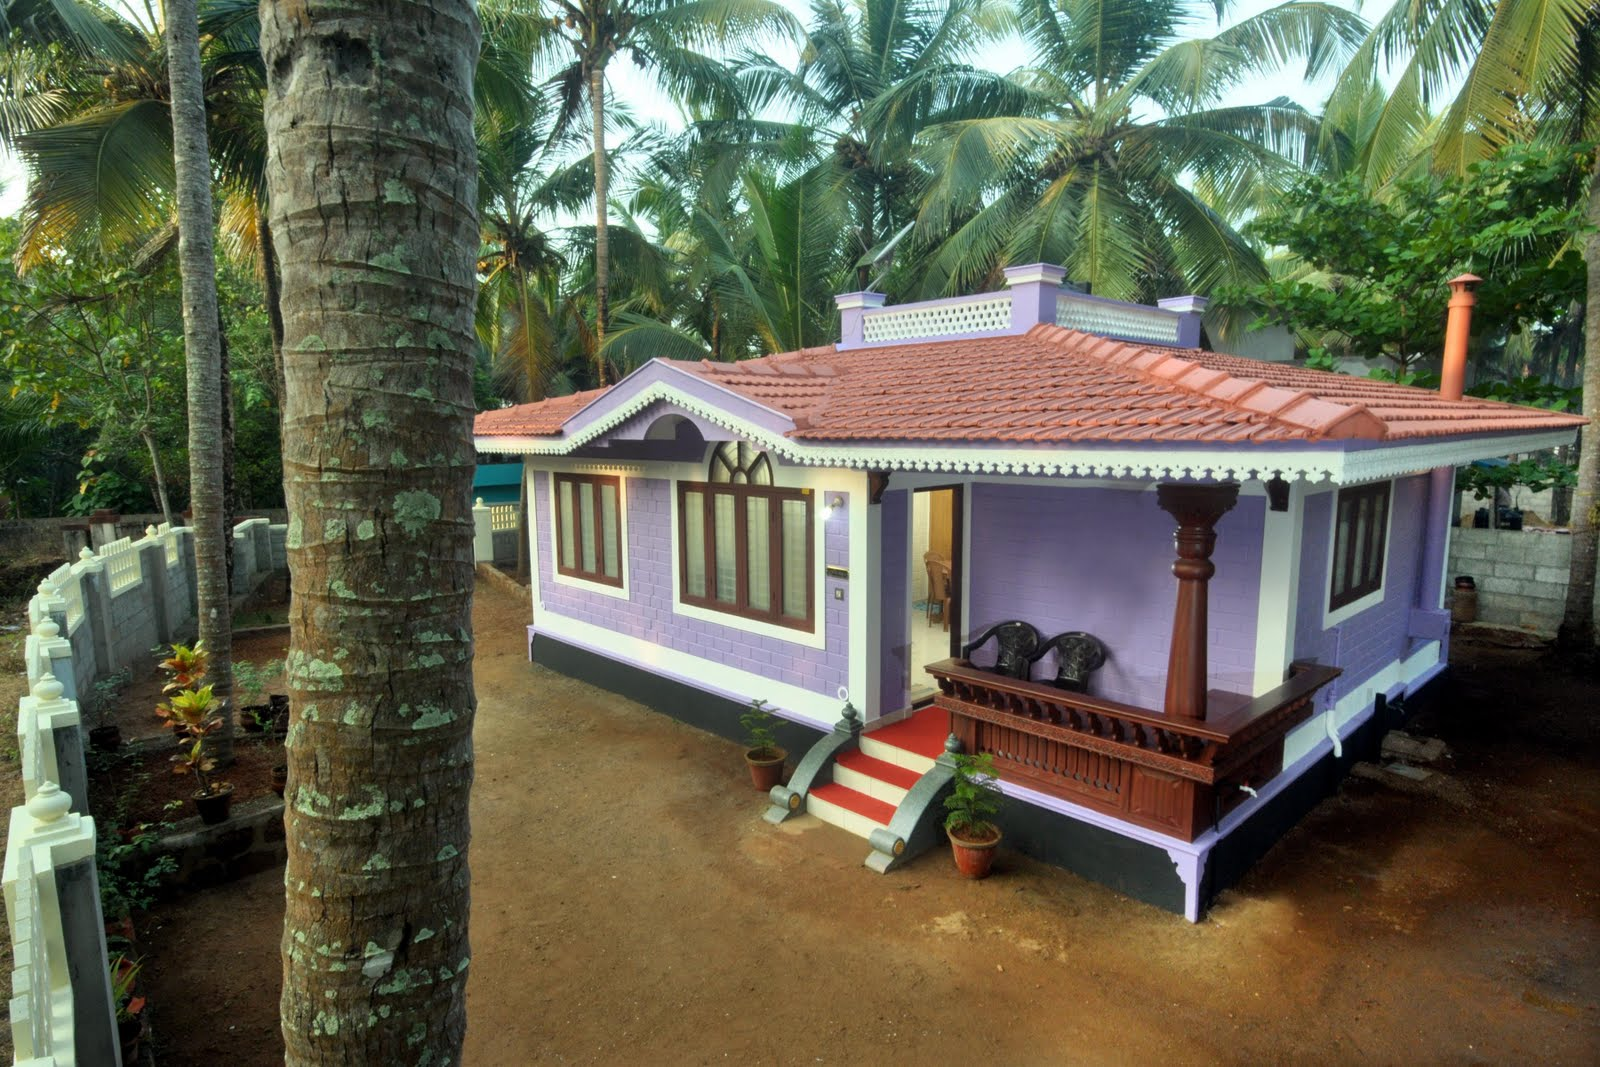 Manorama online veedu low cost joy studio design gallery for Low cost kerala veedu plans